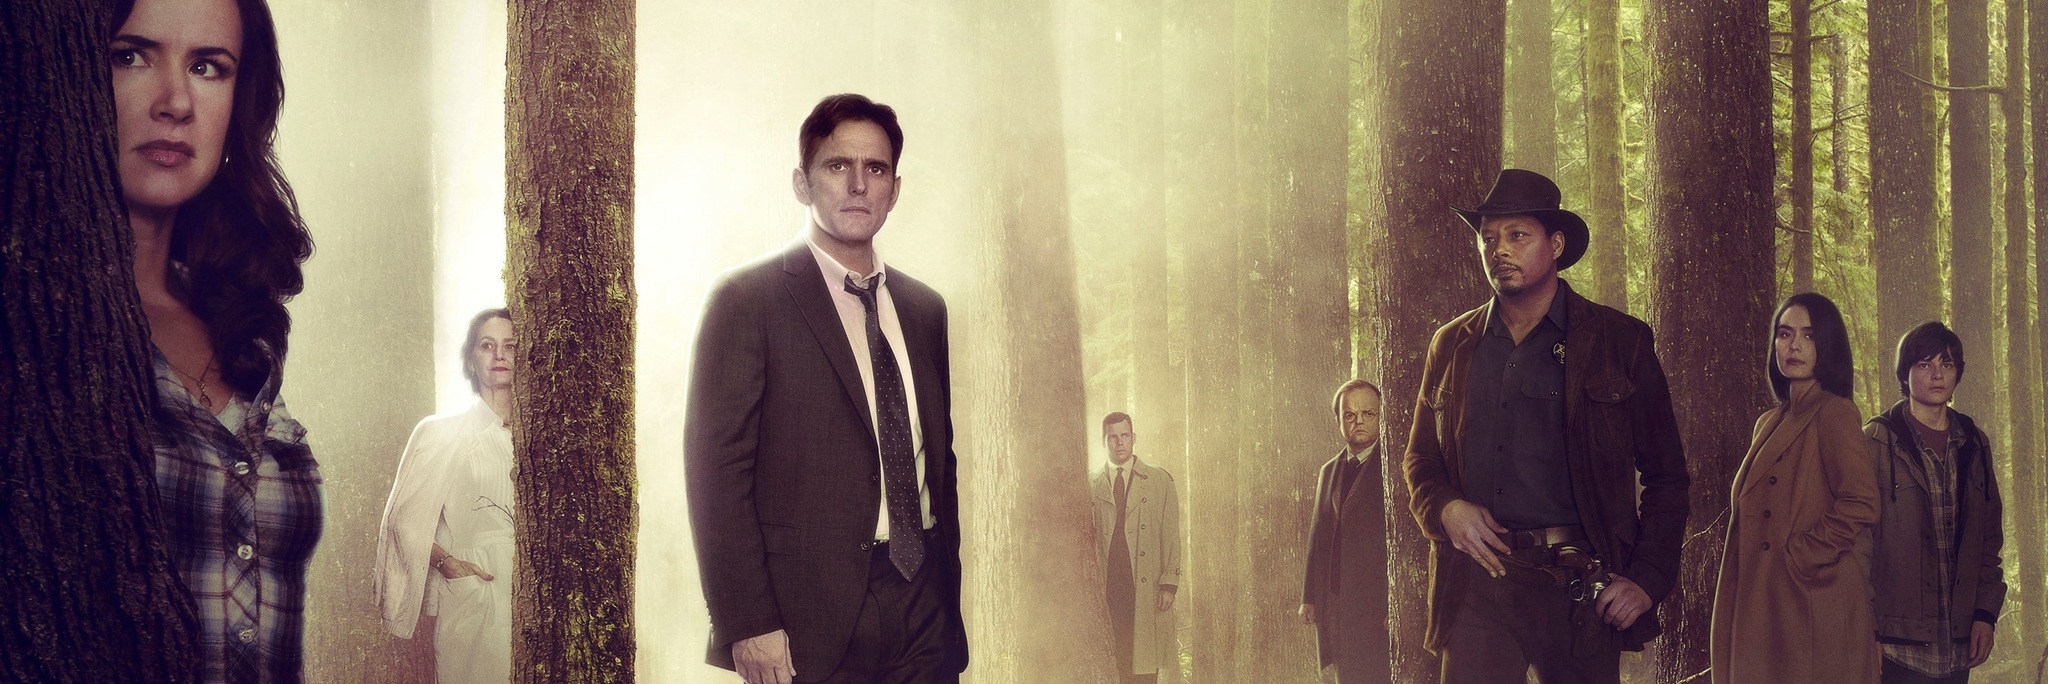 wayward pines, soundtrack season 1